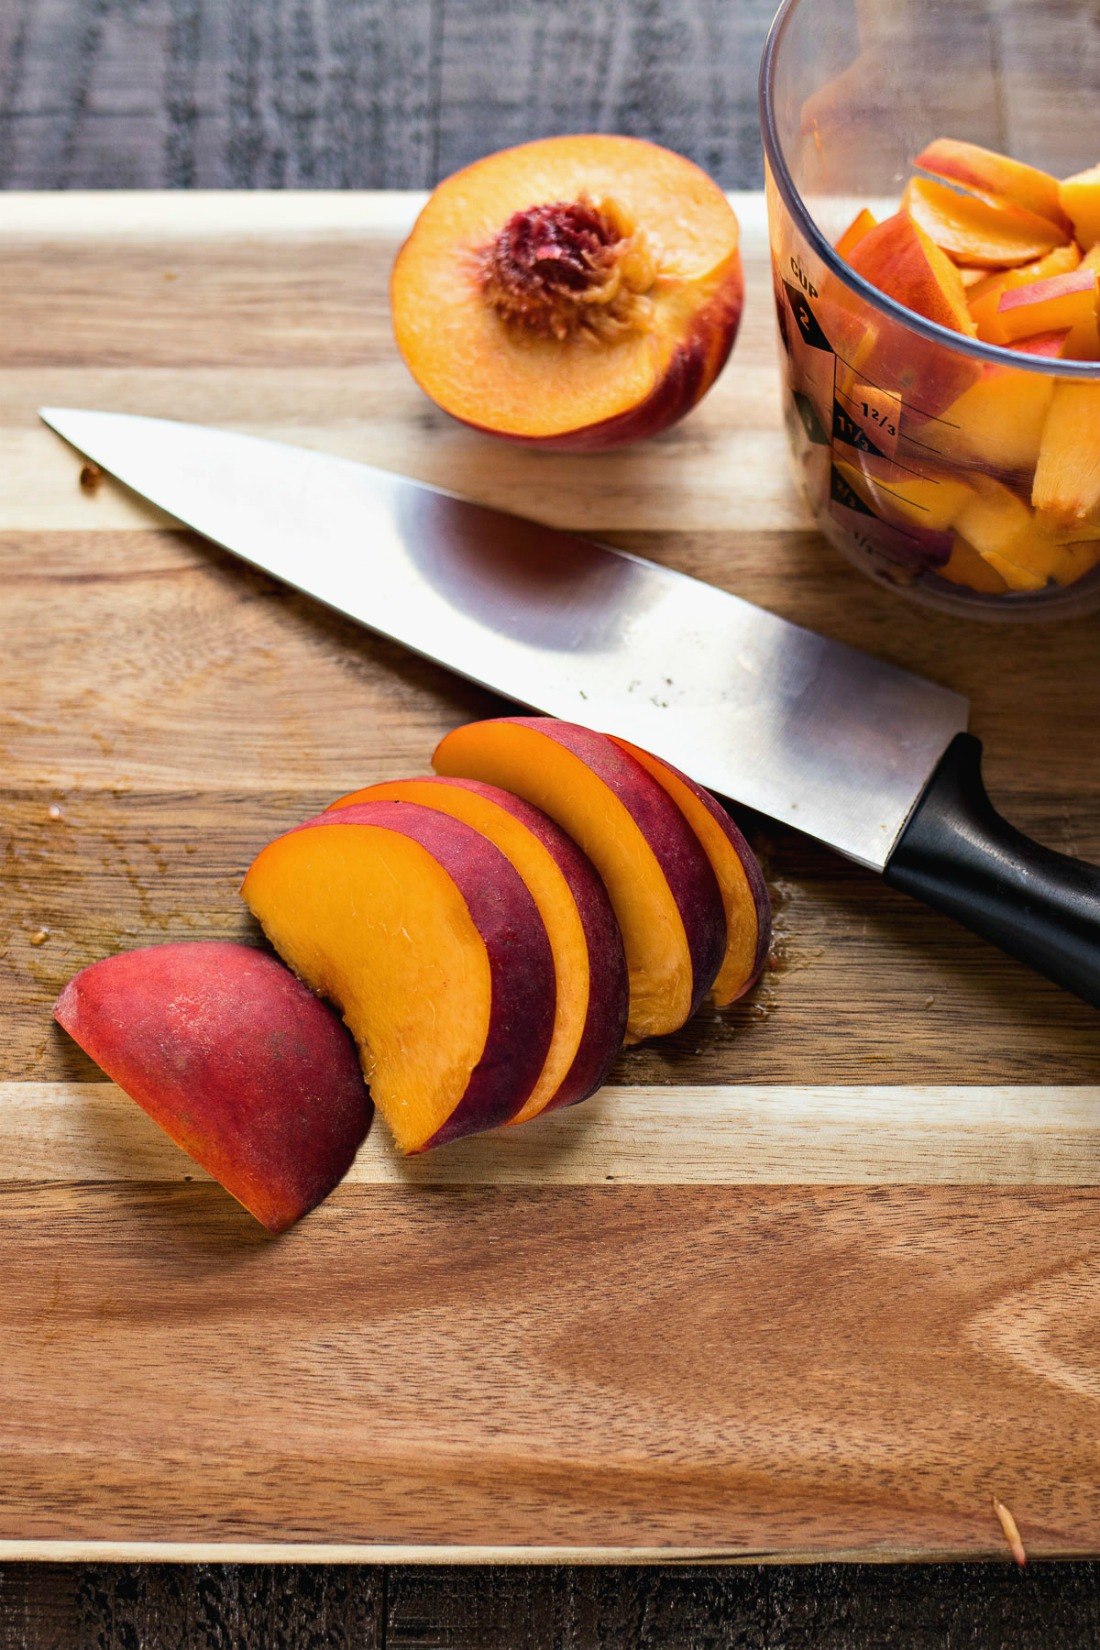 Cutting peaches into slices